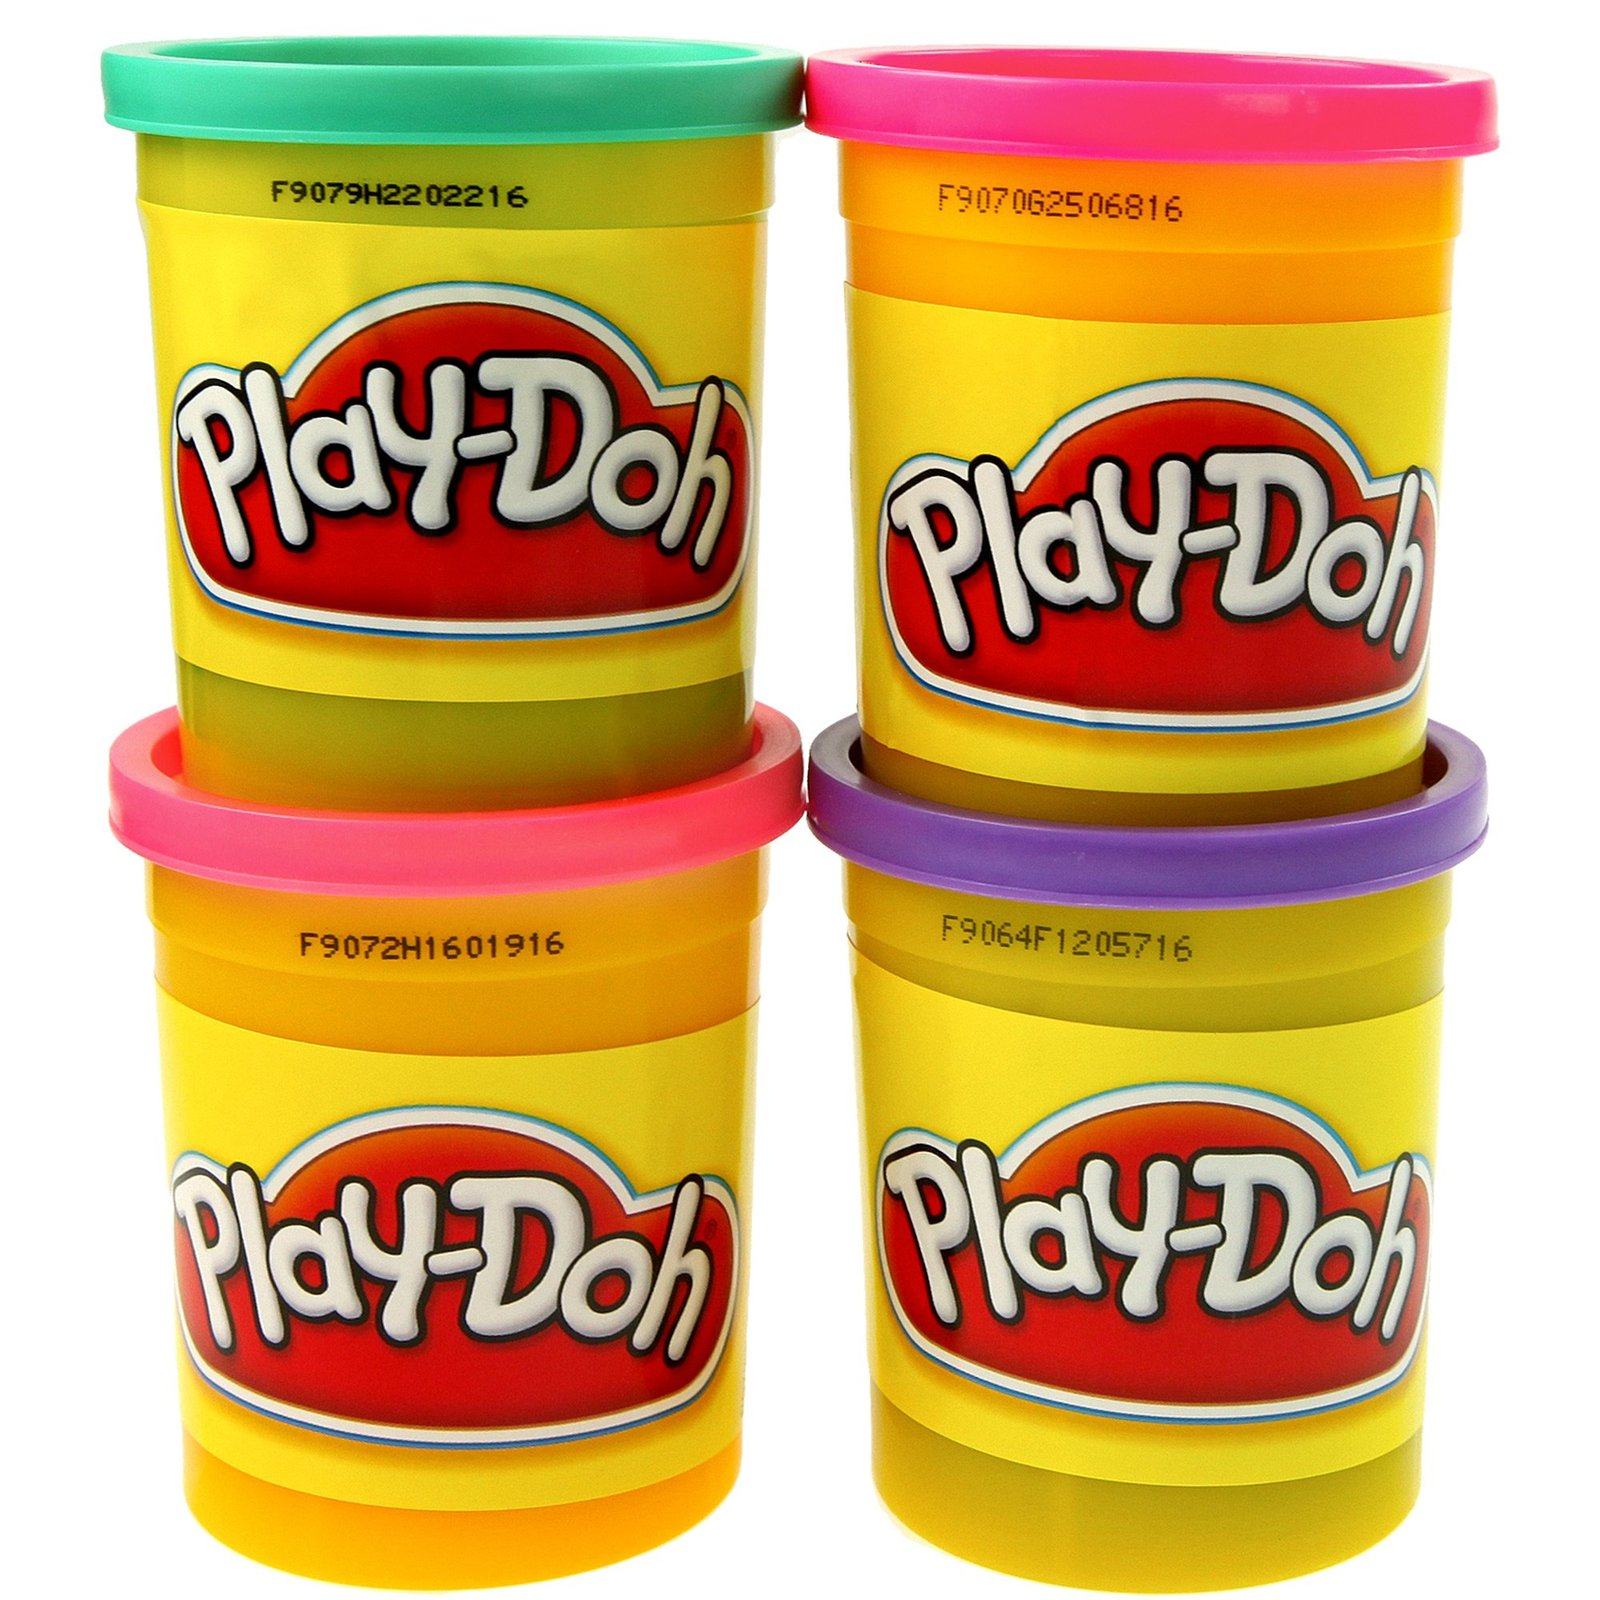 9 Fun Facts About Play Doh For National Play Doh Day